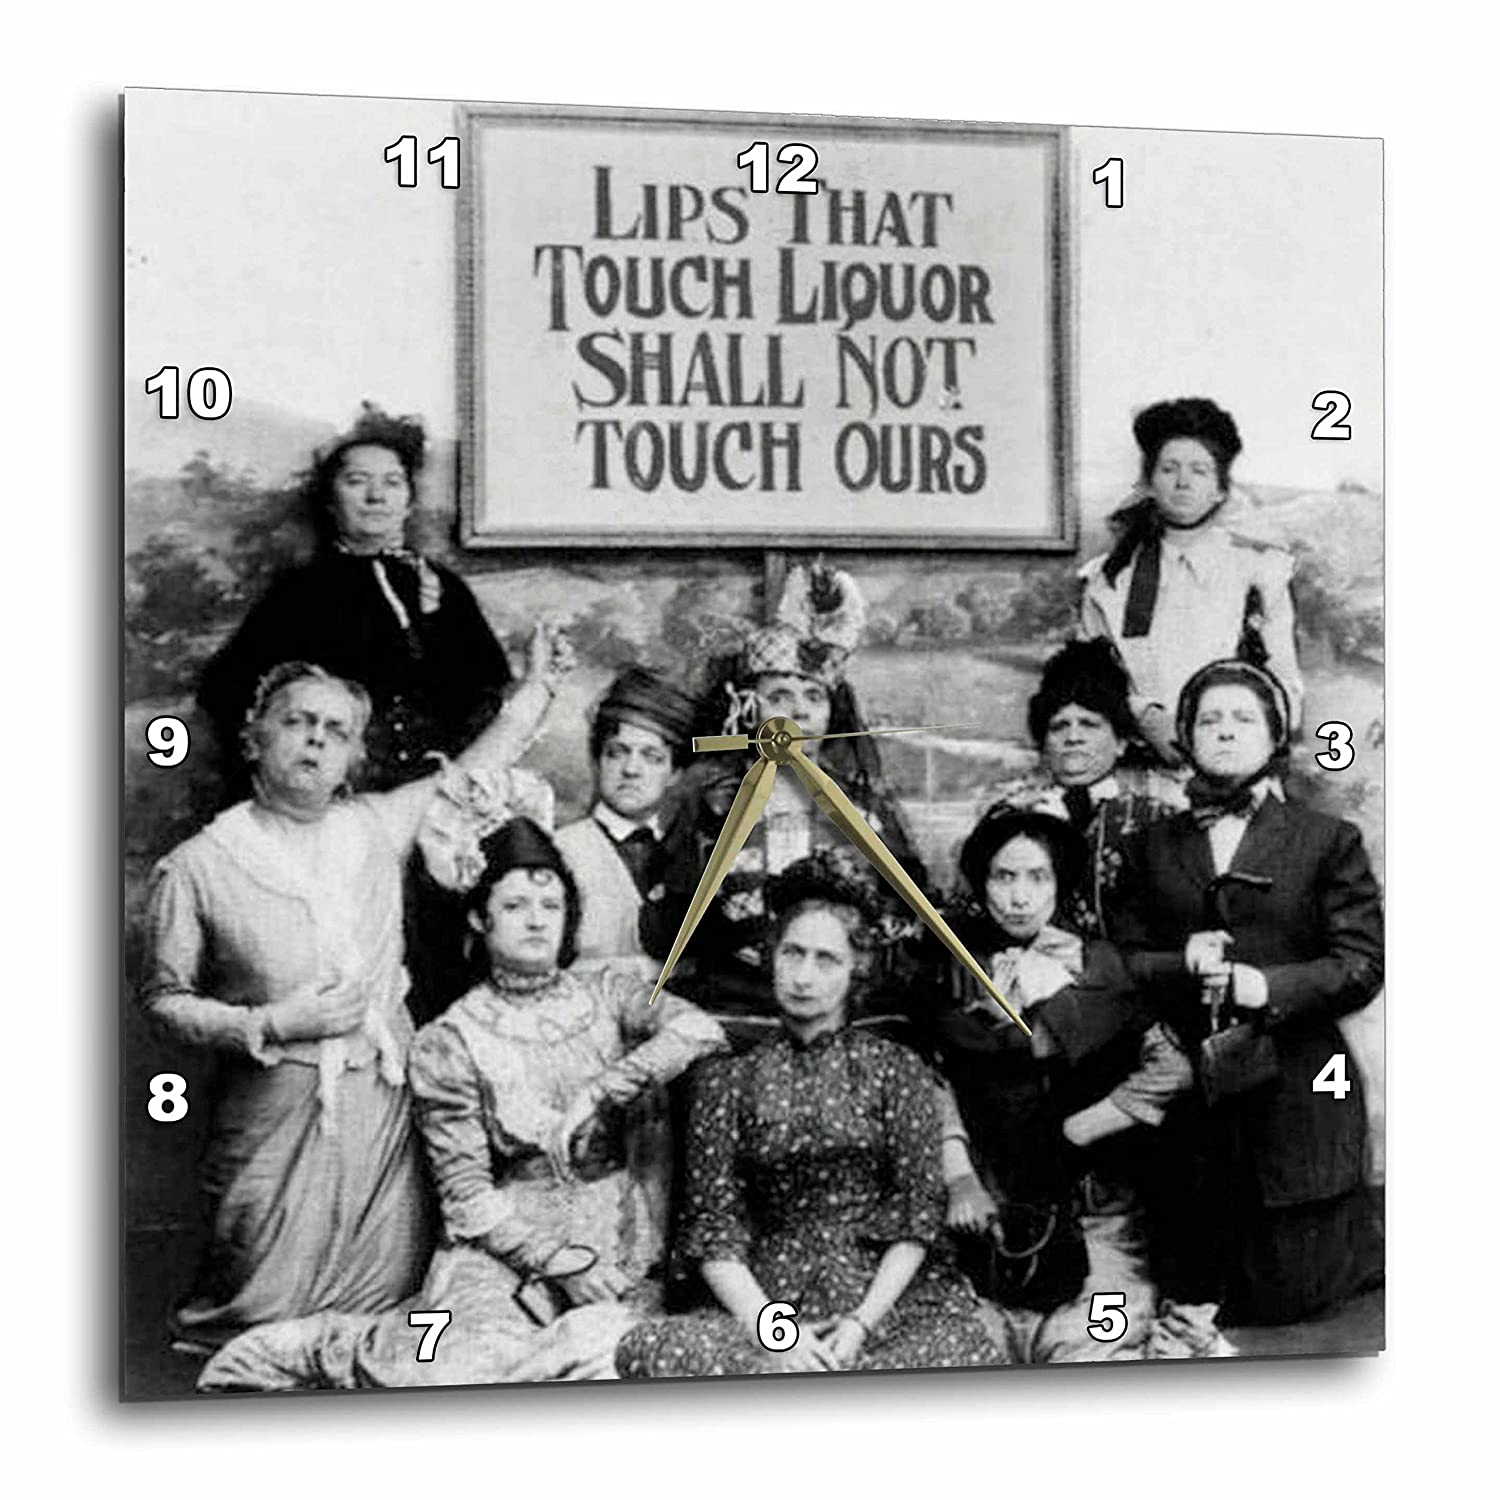 Humor Wall Clock Prohibition 13 by 13-Inch 3dRose dpp/_46926/_2 Lips That Touch Liquor Prohibition Poster